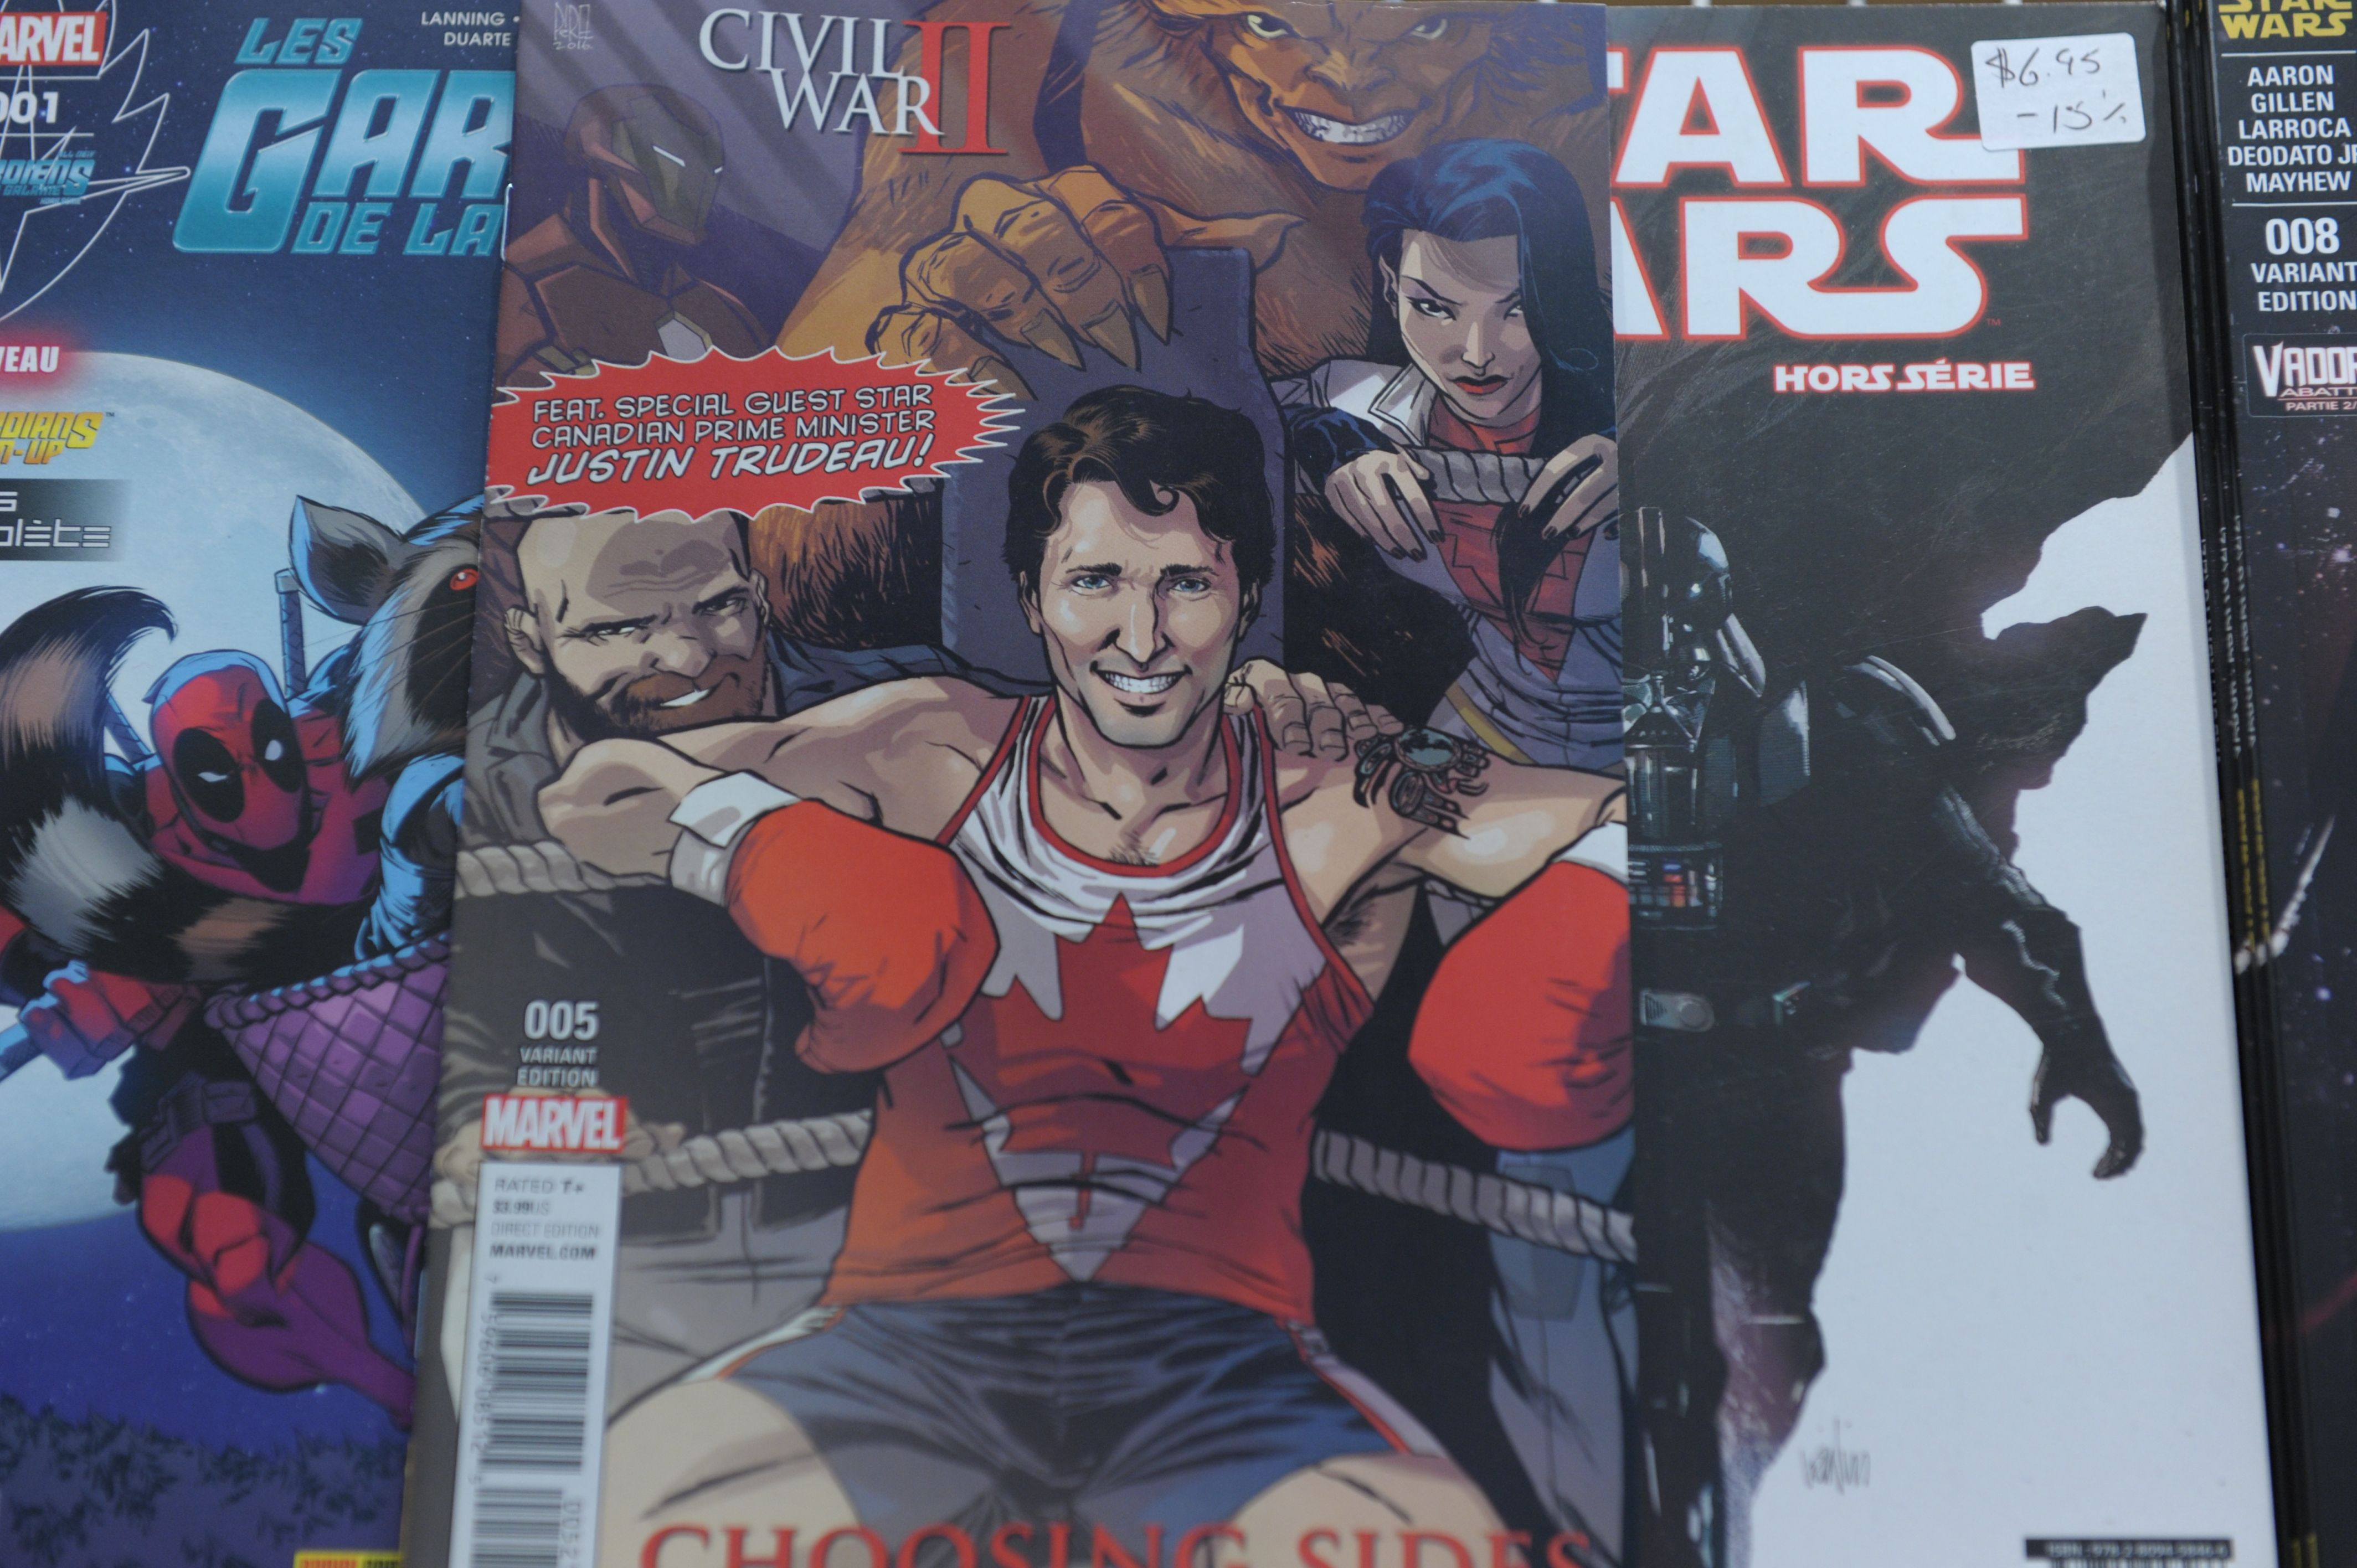 The cover of US publisher Marvel's comic book, featuring Canadian Prime Minister Justin Trudeau as a super hero in front of a newstand in Montreal, Canada on Aug. 31, 2016.                                           Canadian Prime Minister Justin Trudeau takes the role of a superhero in a comic book by US publisher Marvel released on newsstands August 31 in Canada. Trudeau appears smiling in a corner of a boxing ring on the cover of the comic book, a limited edition in English of the series  Civil War II: Choosing Sides  wearing a maple leaf shirt.  / AFP / Marc BRAIBANT / TO GO WITH AFP STORY BY MARC BRAIBANT        (Photo credit should read MARC BRAIBANT/AFP/Getty Images)